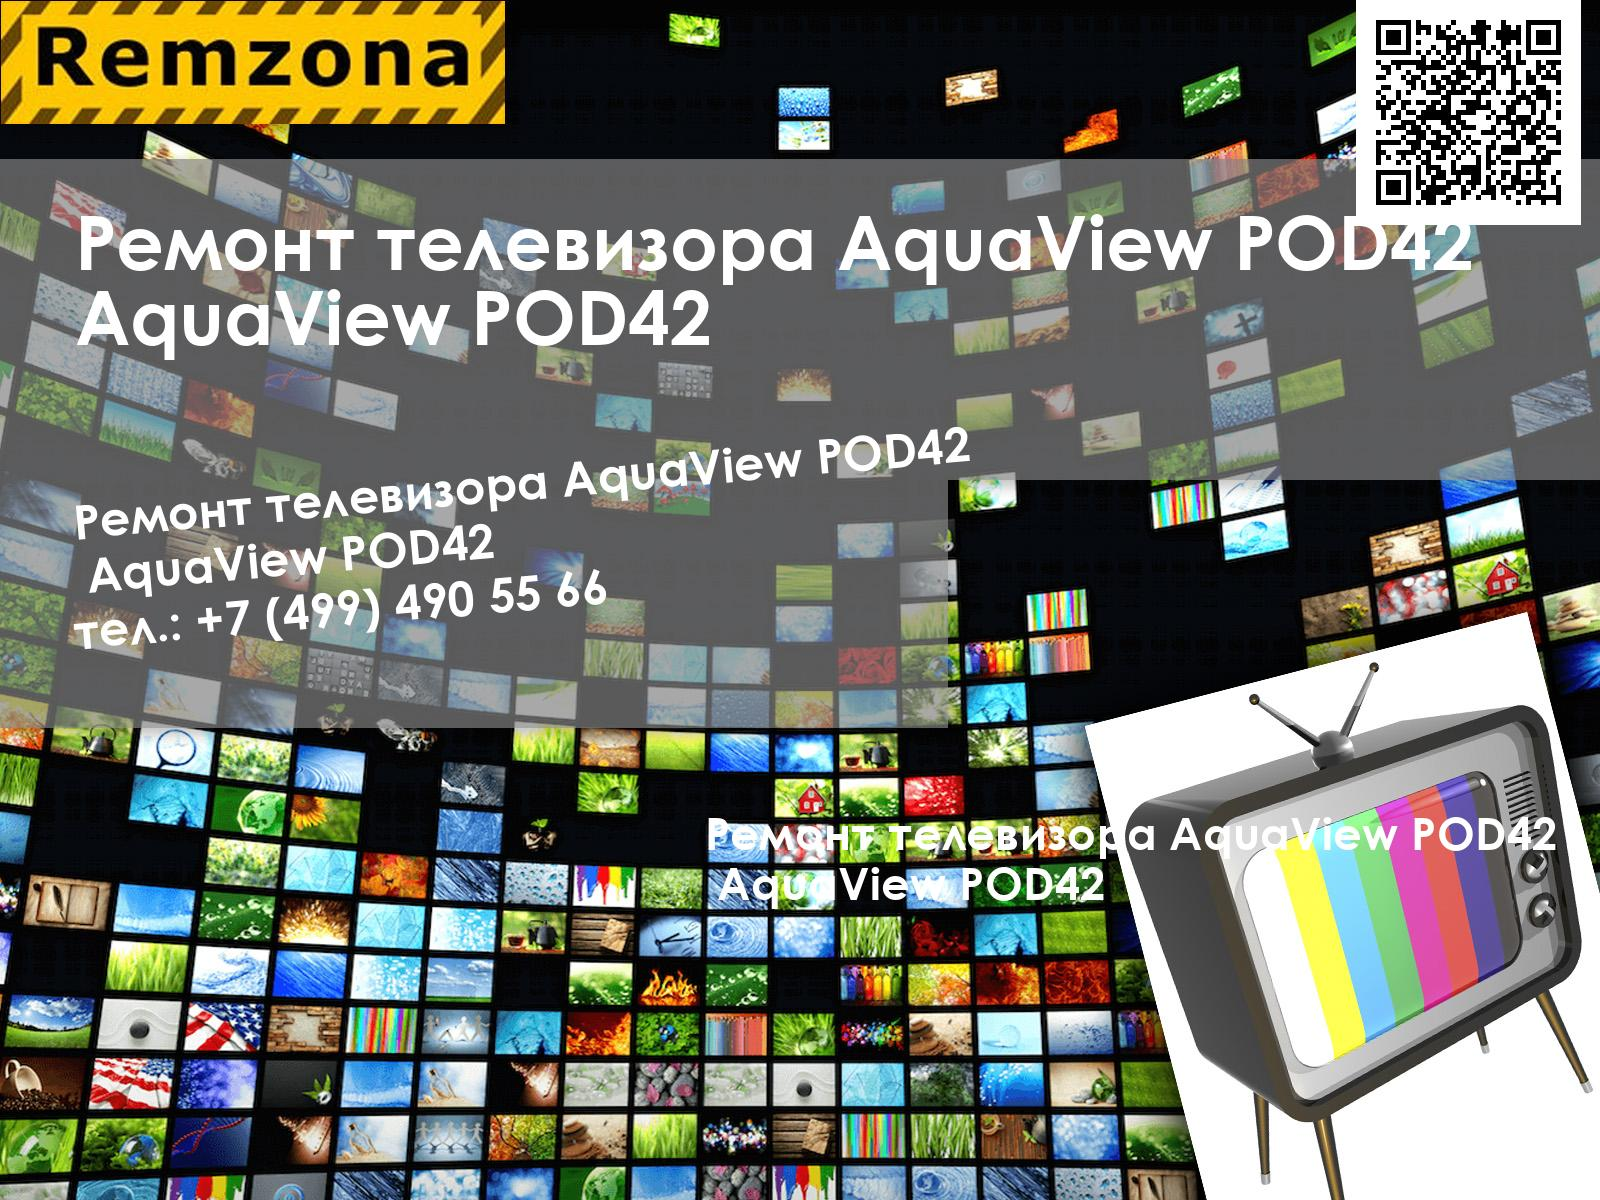 Ремонт телевизора AquaView POD42